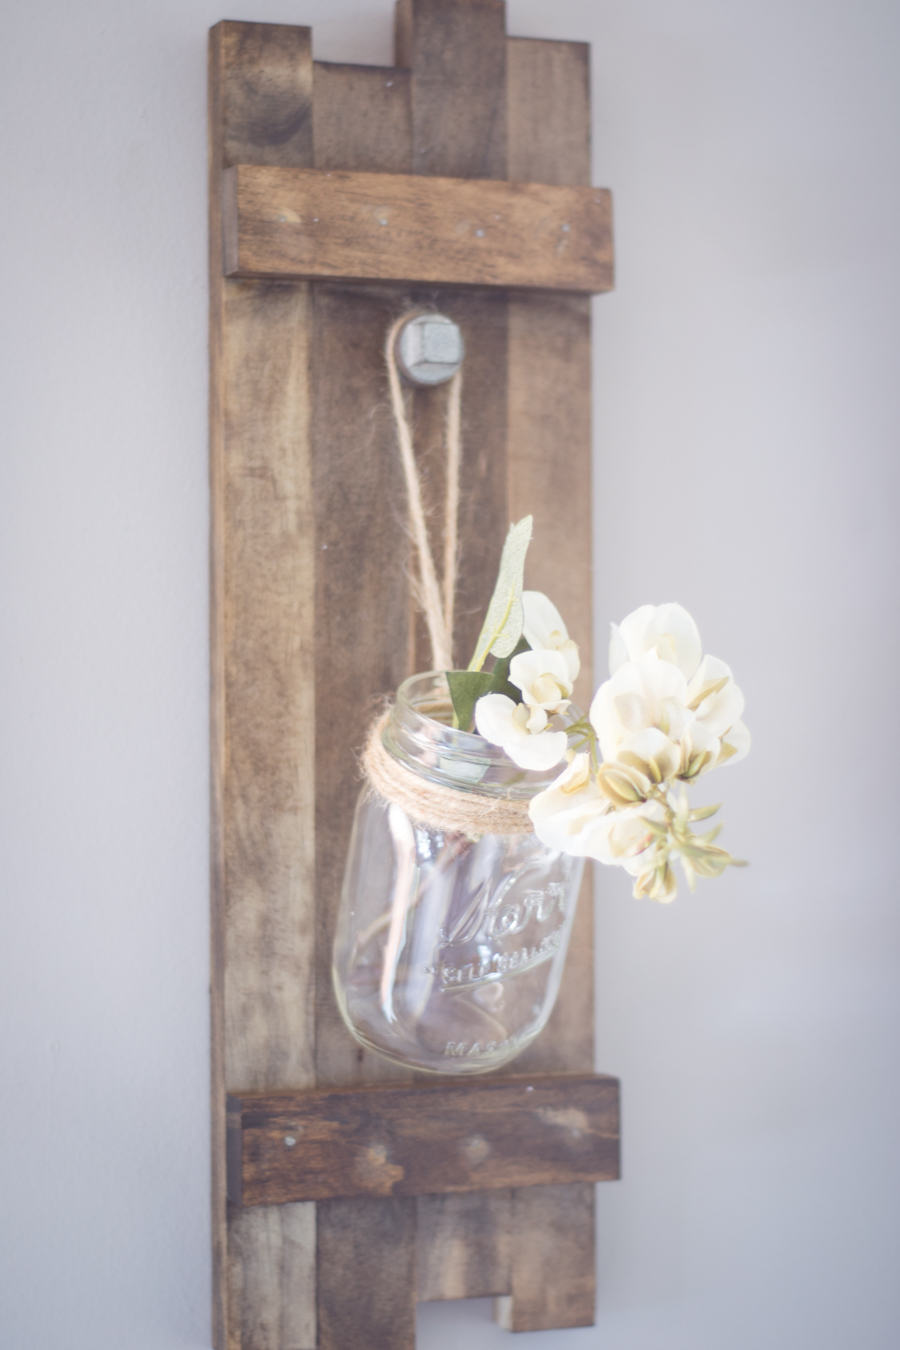 DIY Wooden Farmhouse Style Mason Jar Holder